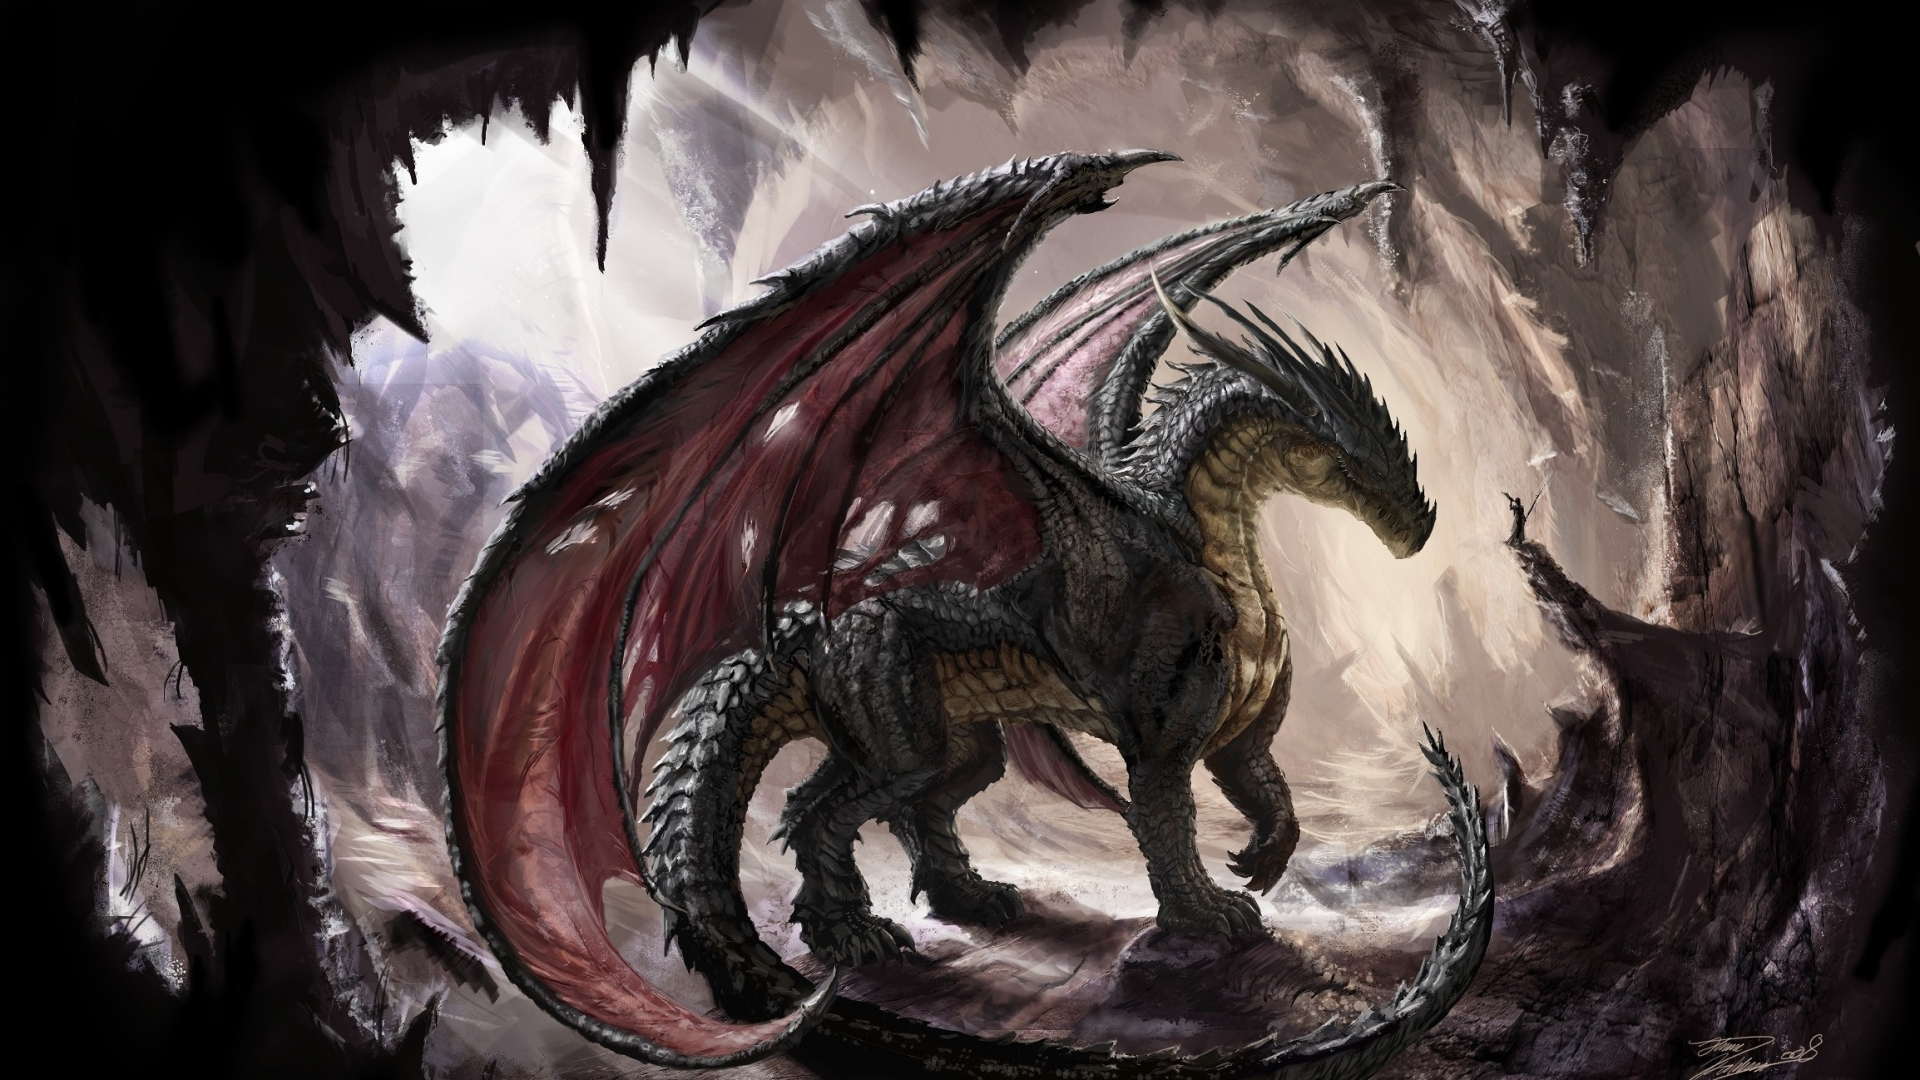 full hd 1080p dragon wallpapers hd, desktop backgrounds 1920x1080